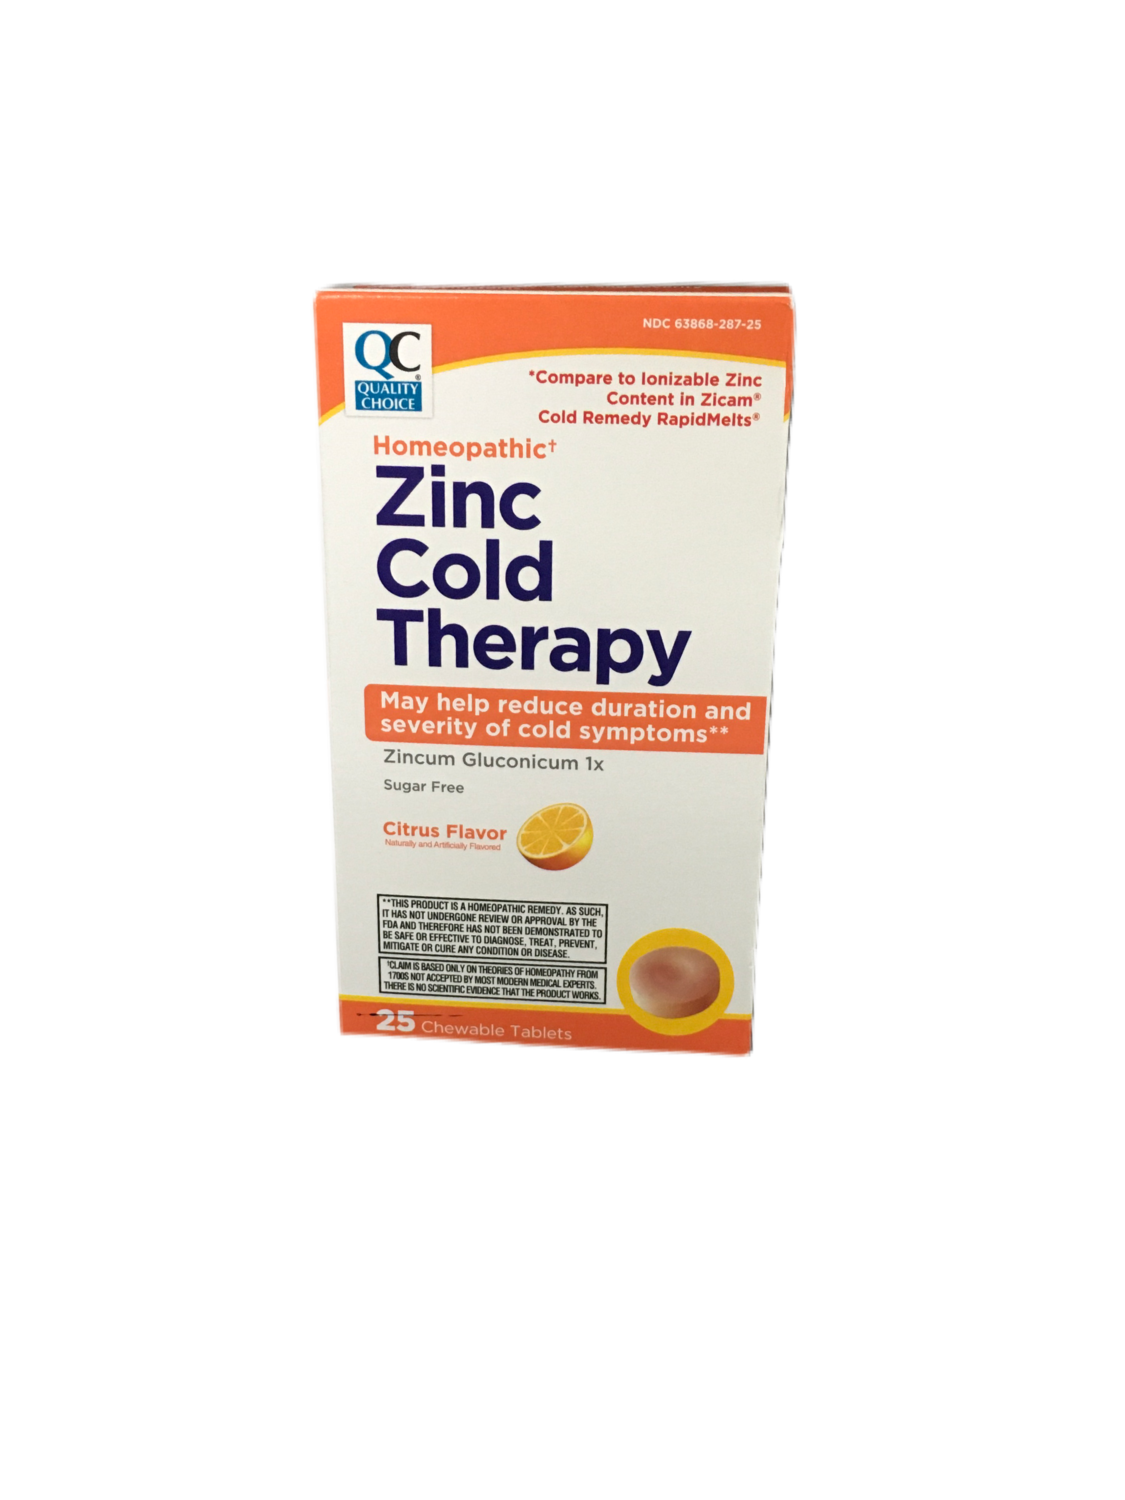 QC Zinc Cold Therapy